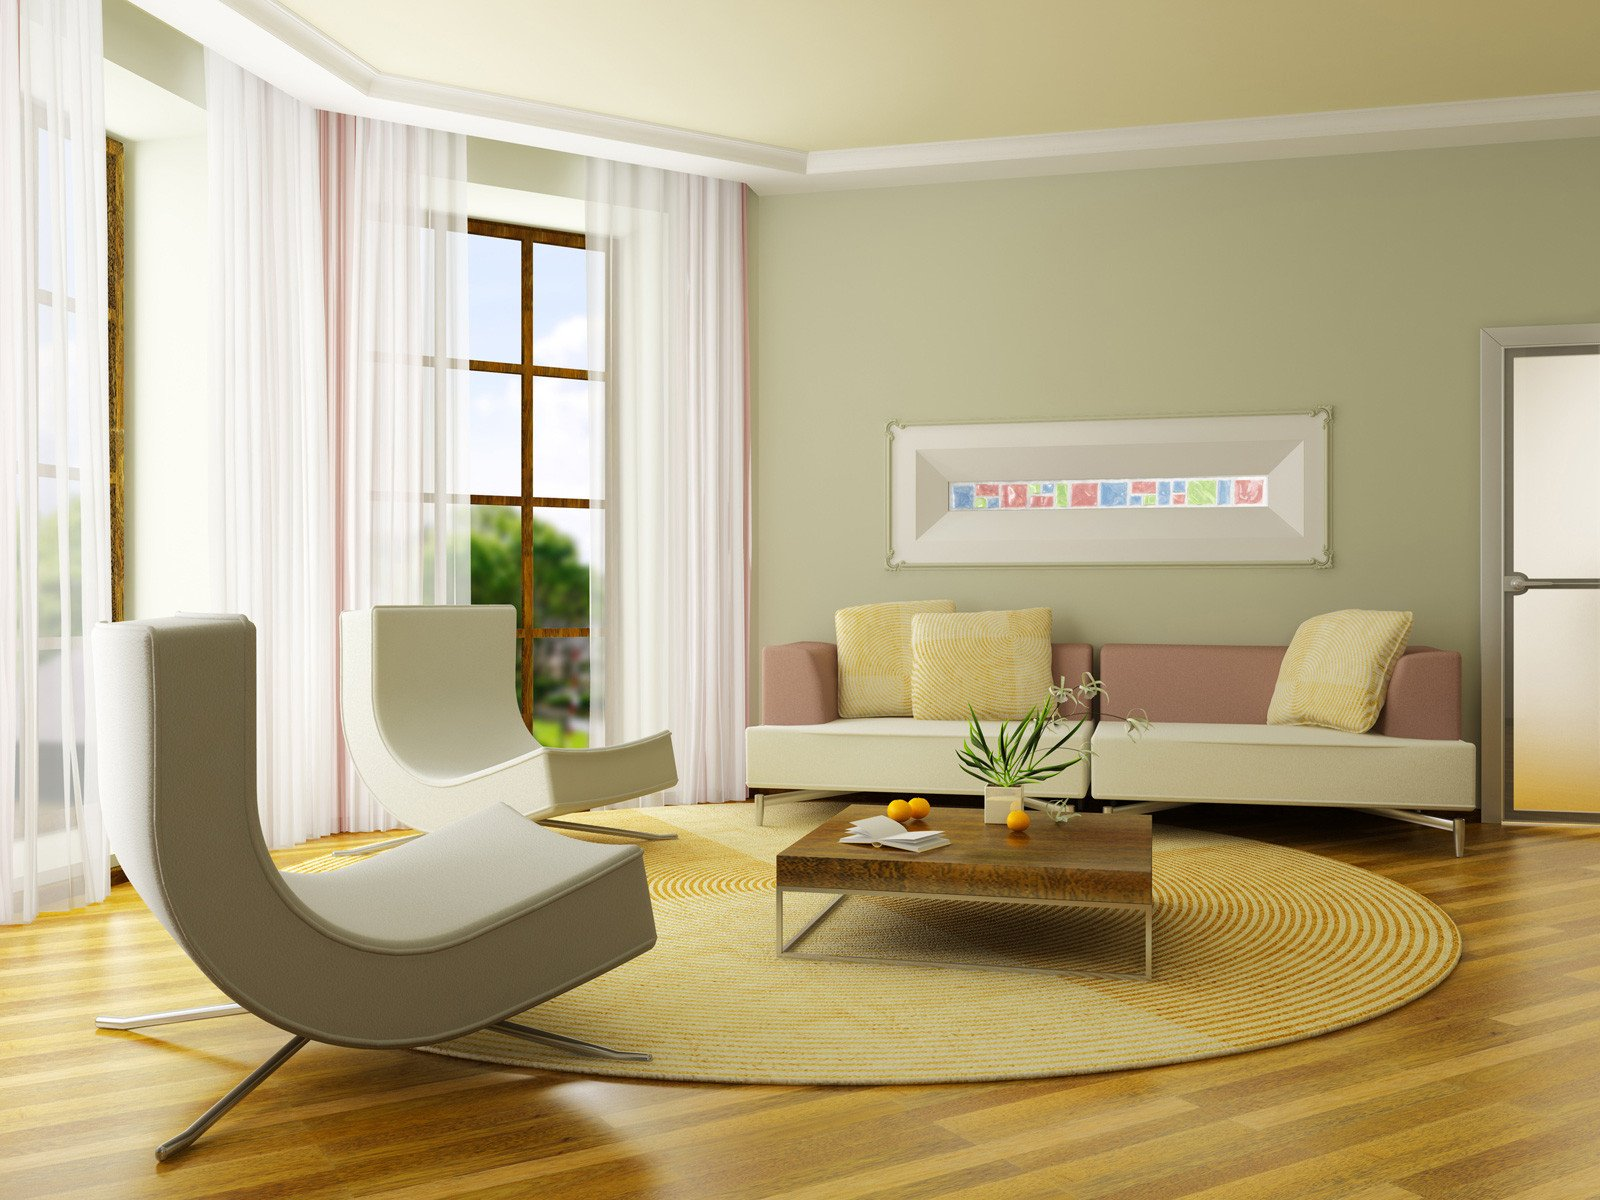 Small Living Roompaint Ideas Elegant Paint Ideas for Living Room with Narrow Space theydesign theydesign